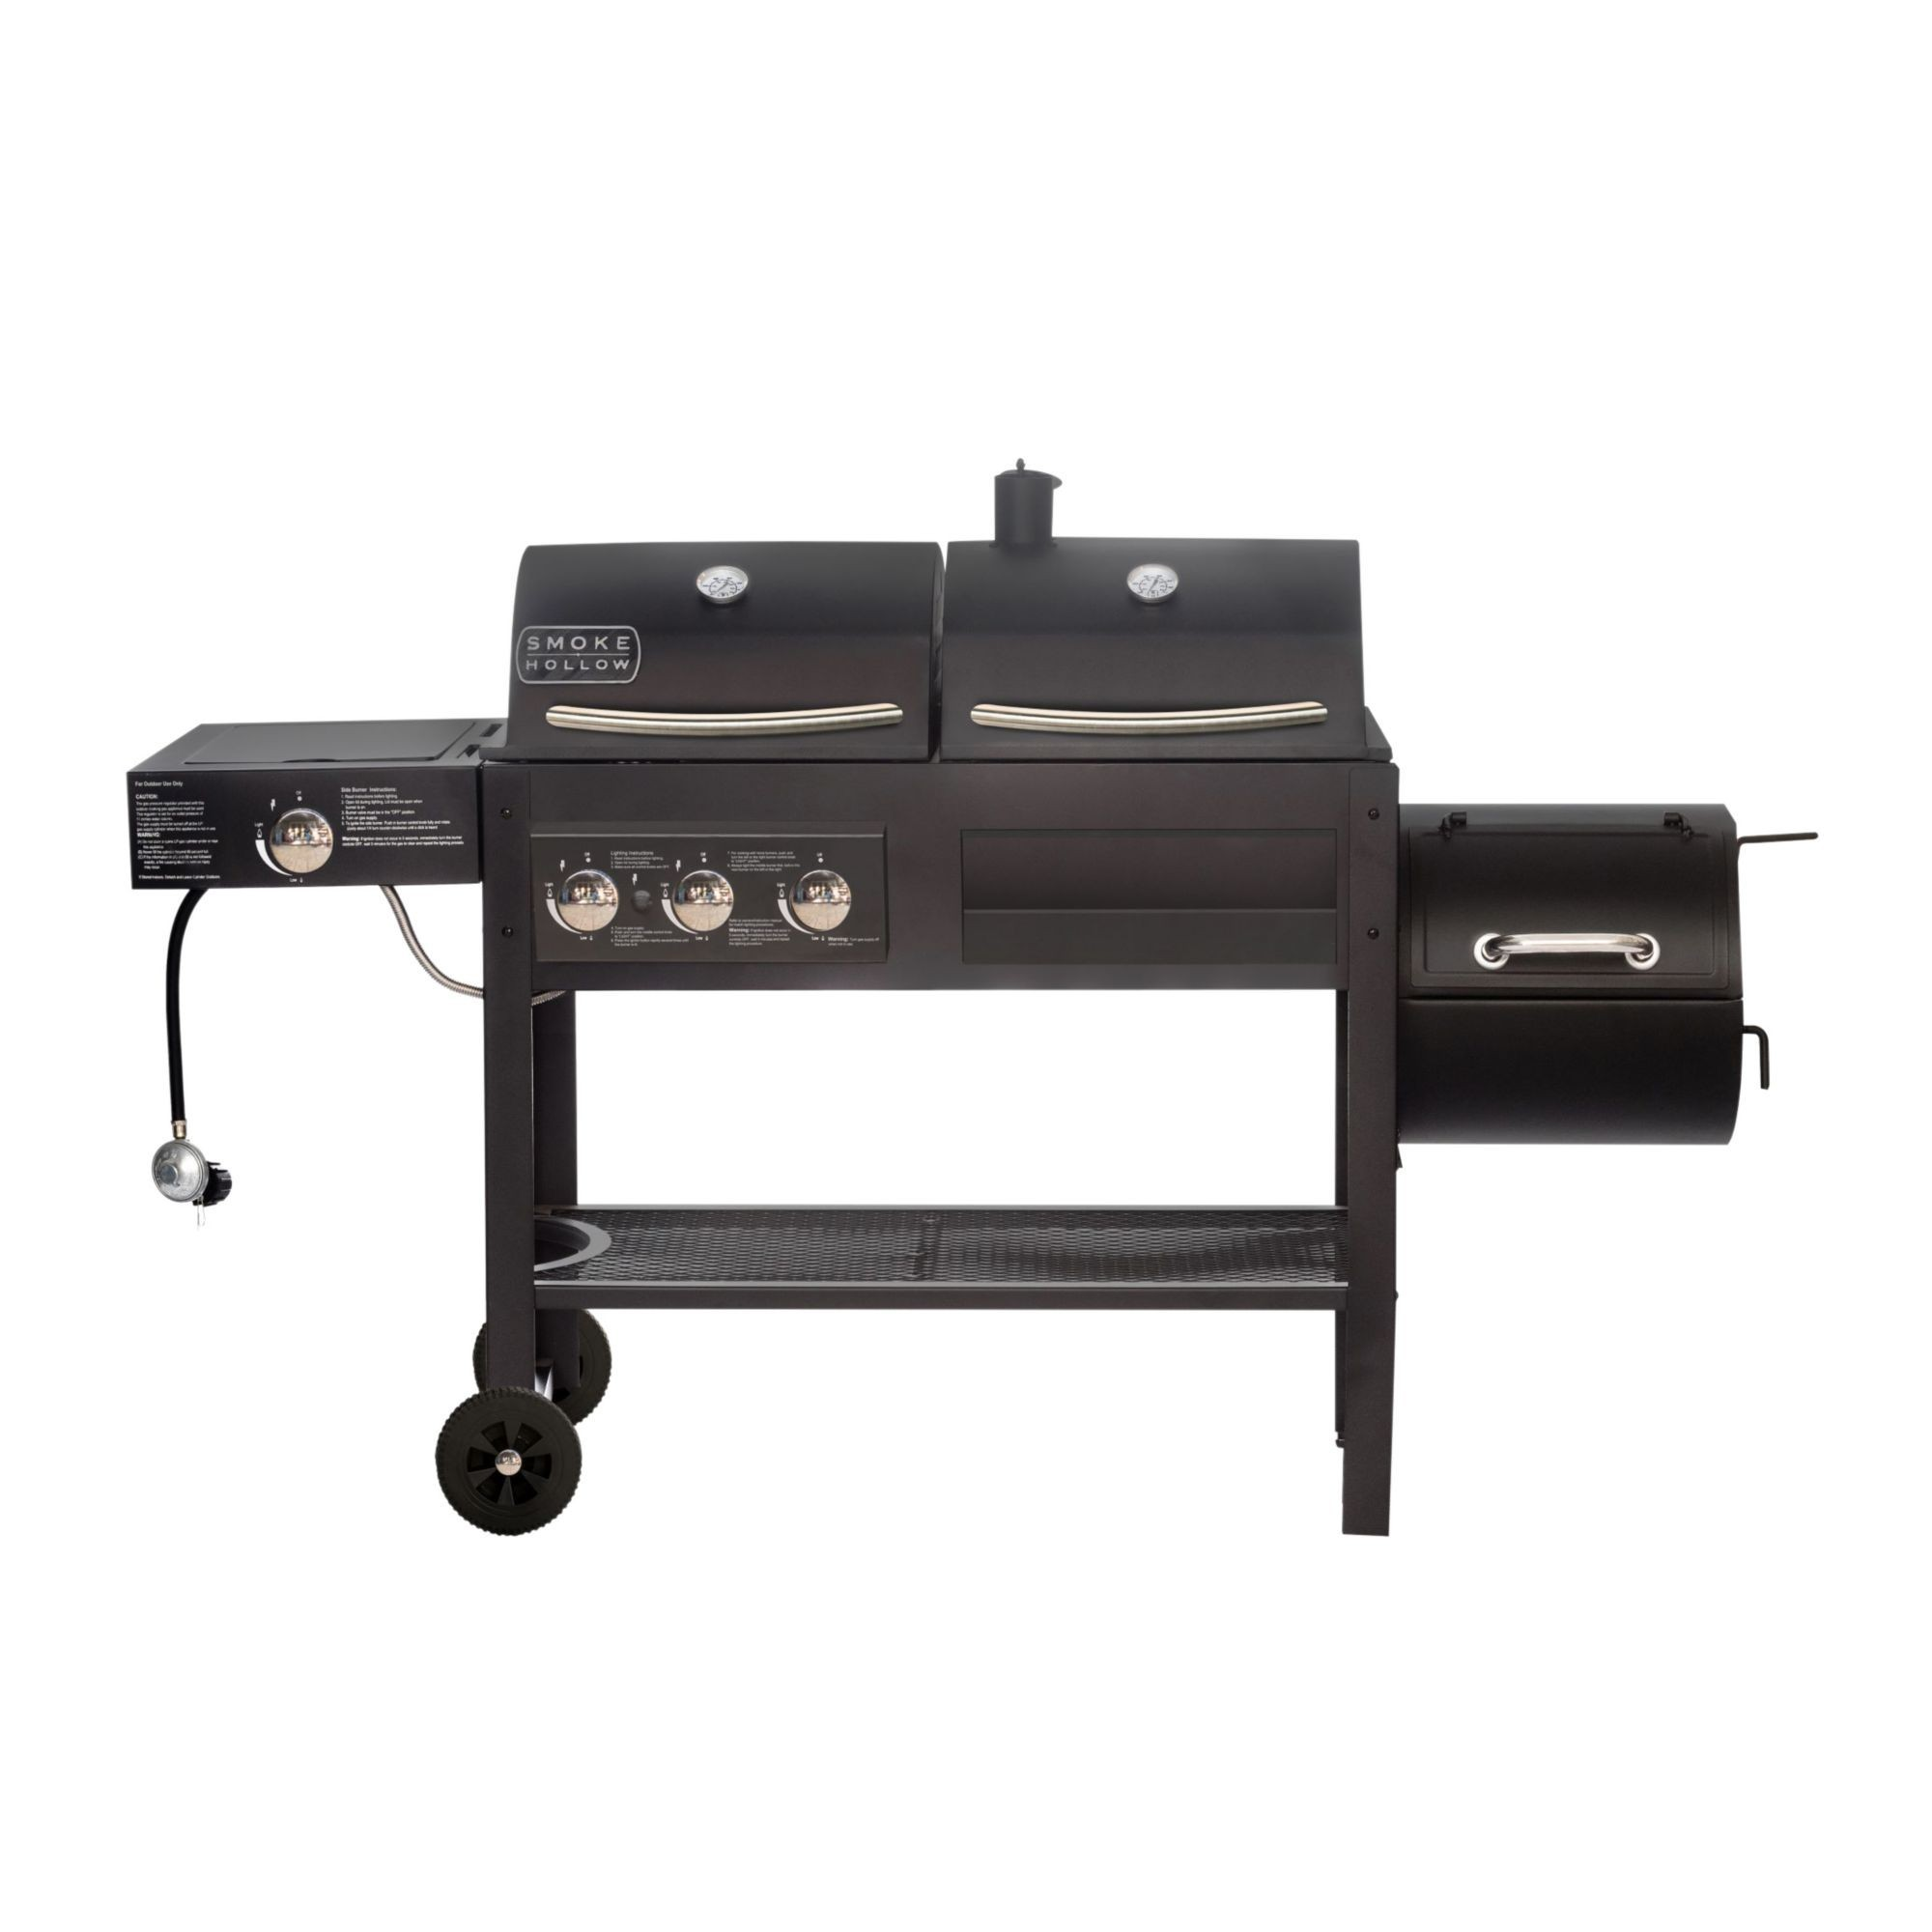 4 Pallets of Grills, Phones, Small Appliances & More Ext. Retail $11,349, Uxbridge, MA